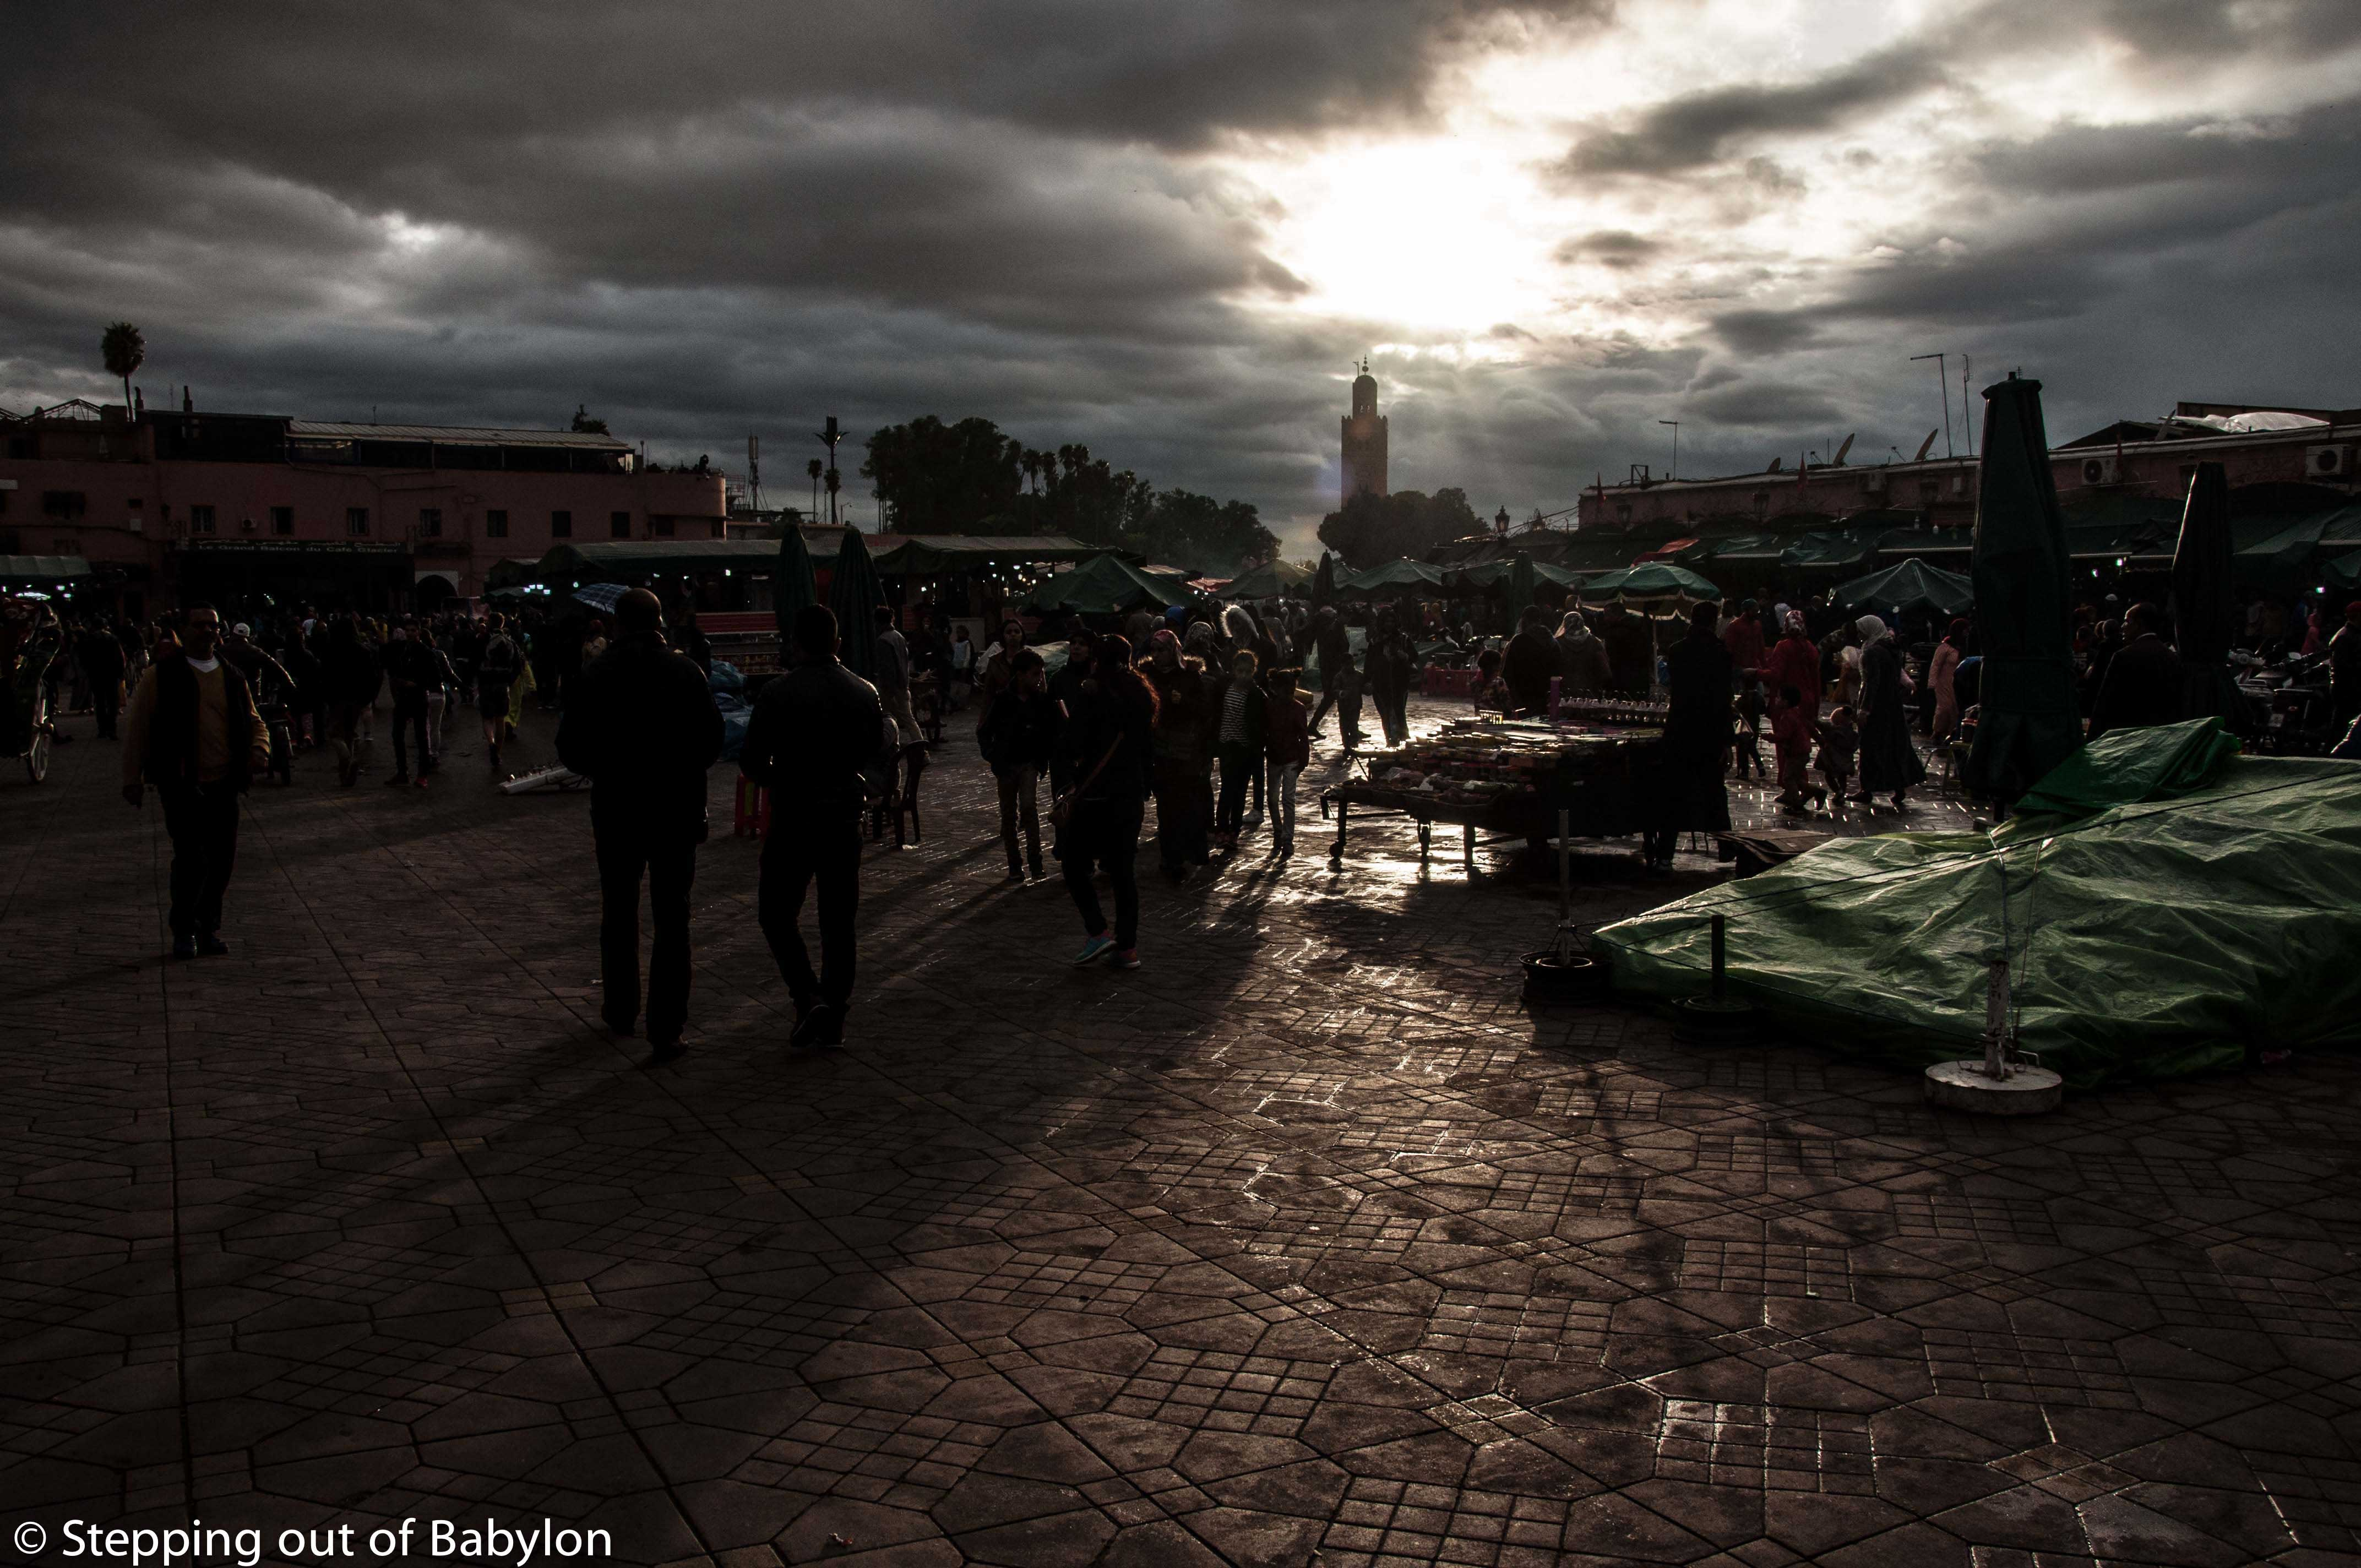 Marrakesh… the first contact with the Moroccan culture